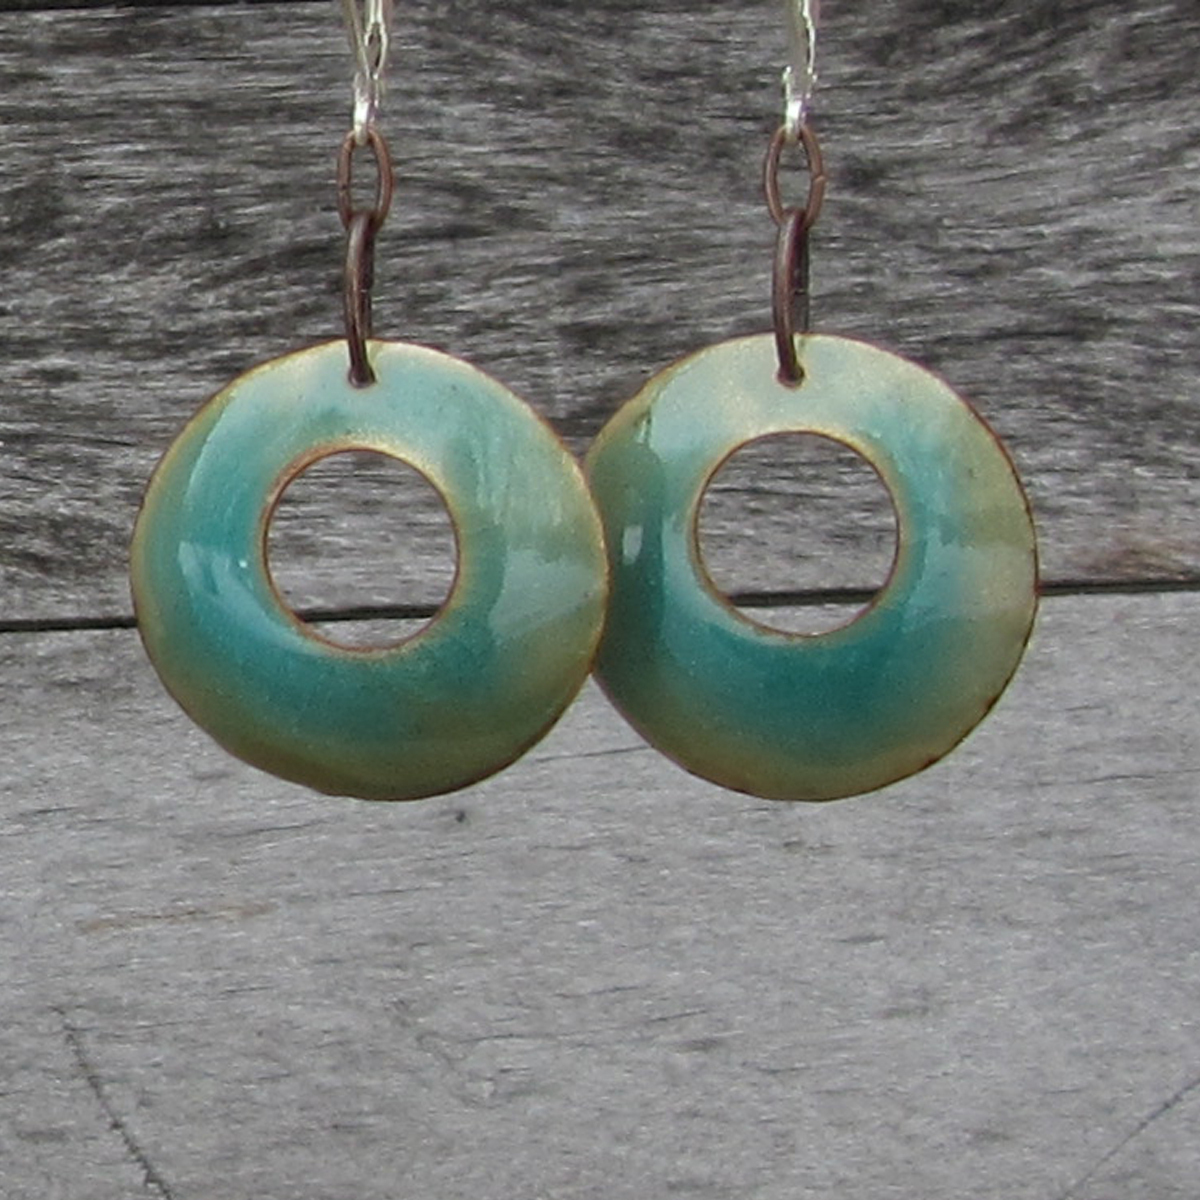 70s Earrings Earrings Collection Source · Bluegreen 70 S Style Earrings